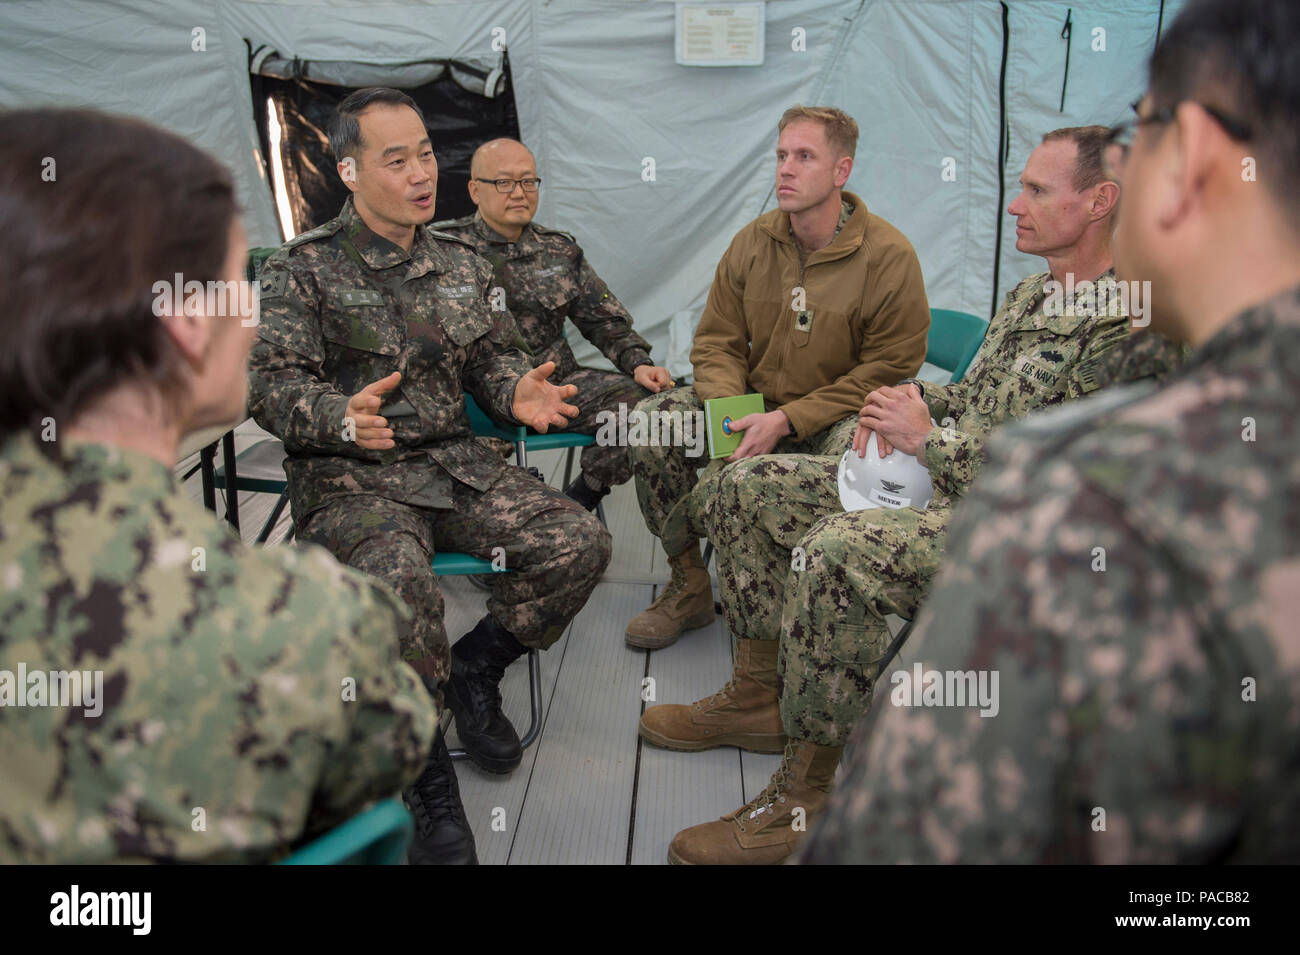 160314-N-HA376-494 BUSAN, Republic of Korea (March 14, 2016) - Republic of Korea (ROK) Navy Capt. Jung, Minh-wan, ROK engineering bureau chief, speaks about further U.S. and ROK engagements with Capt. James Meyer, commodore, 30th Naval Construction Regiment (30 NCR) and Cmdr. Ross Campbell,  30 NCR operations officer, during exercise Foal Eagle 2016.  30 NCR is forward deployed to provide command and control of U.S. Navy Seabees working with their ROK counterparts during Foal Eagle. Foal Eagle is an annual, bilateral training exercise designed to enhance the readiness of U.S. and ROK forces, a - Stock Image